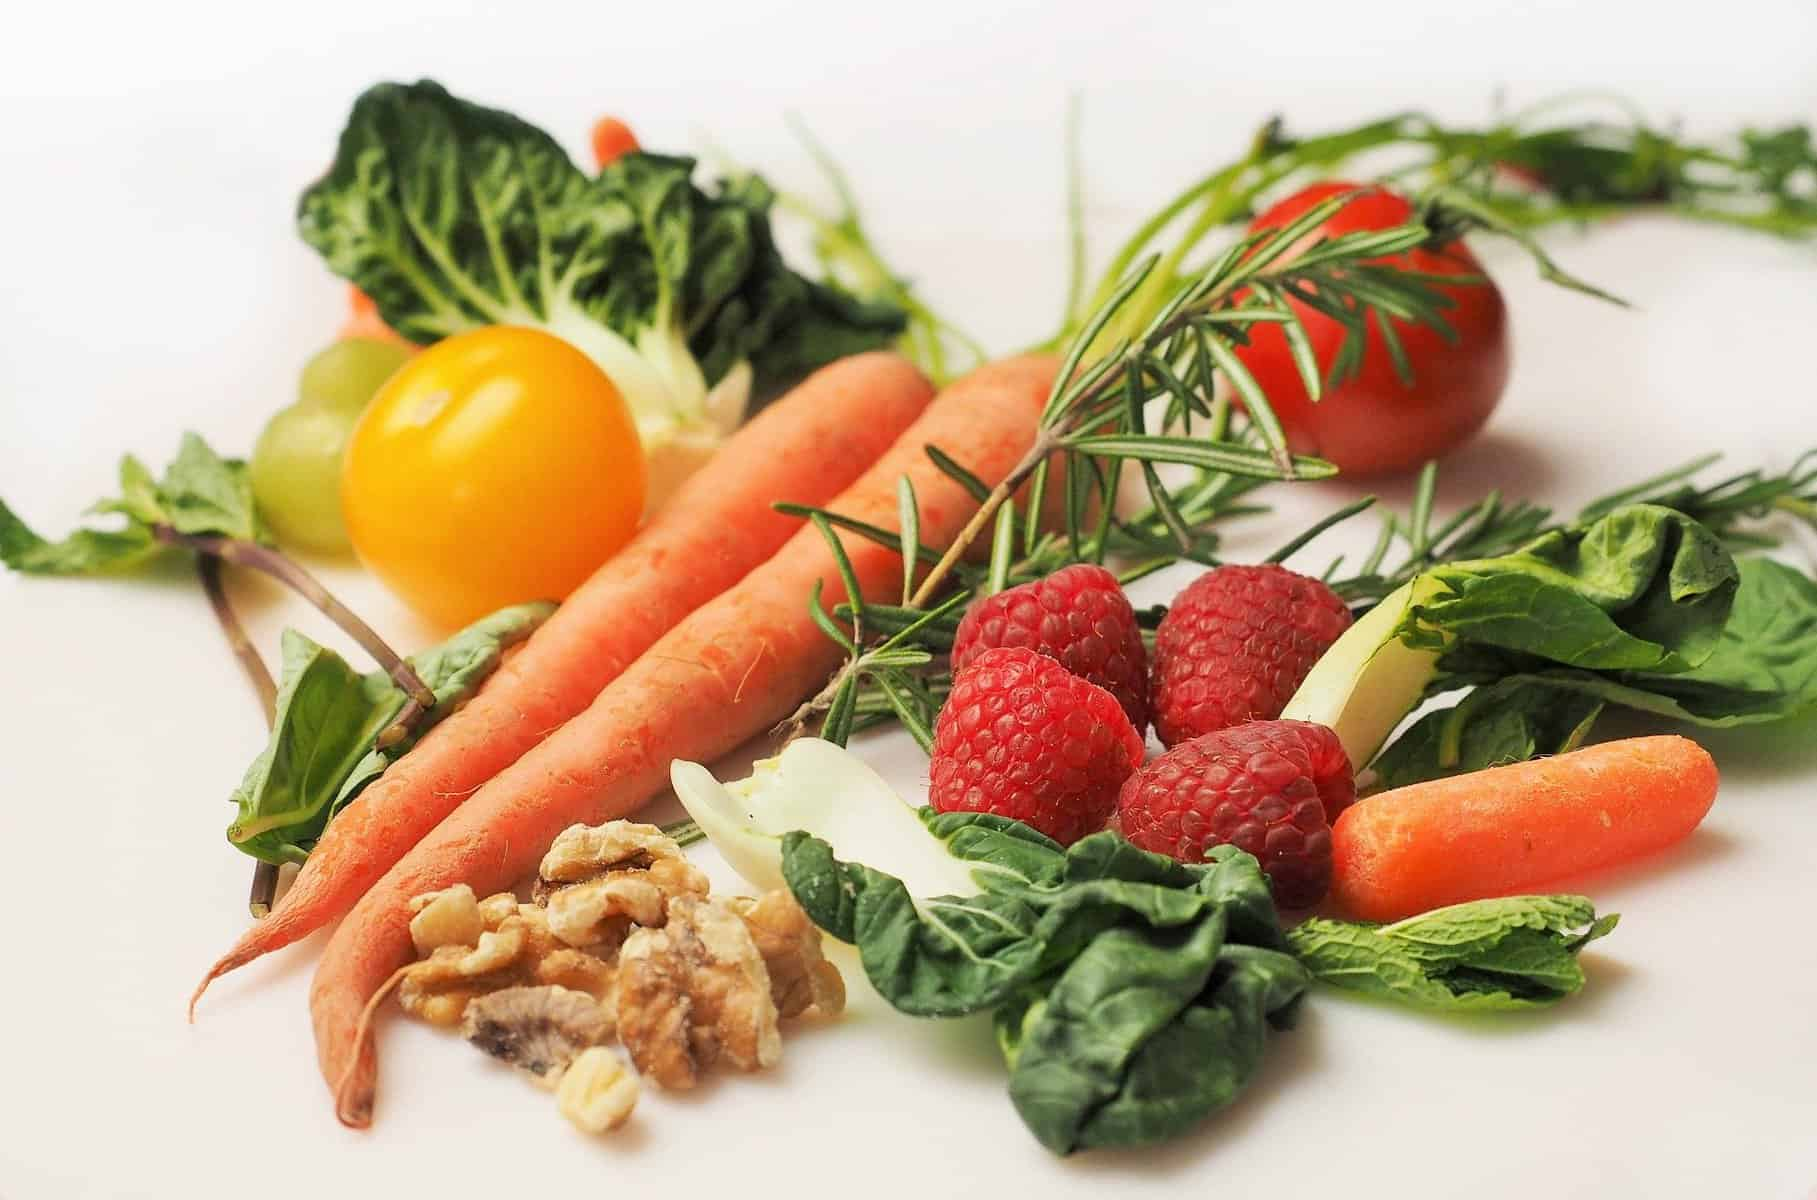 vegetables, fruits and nuts